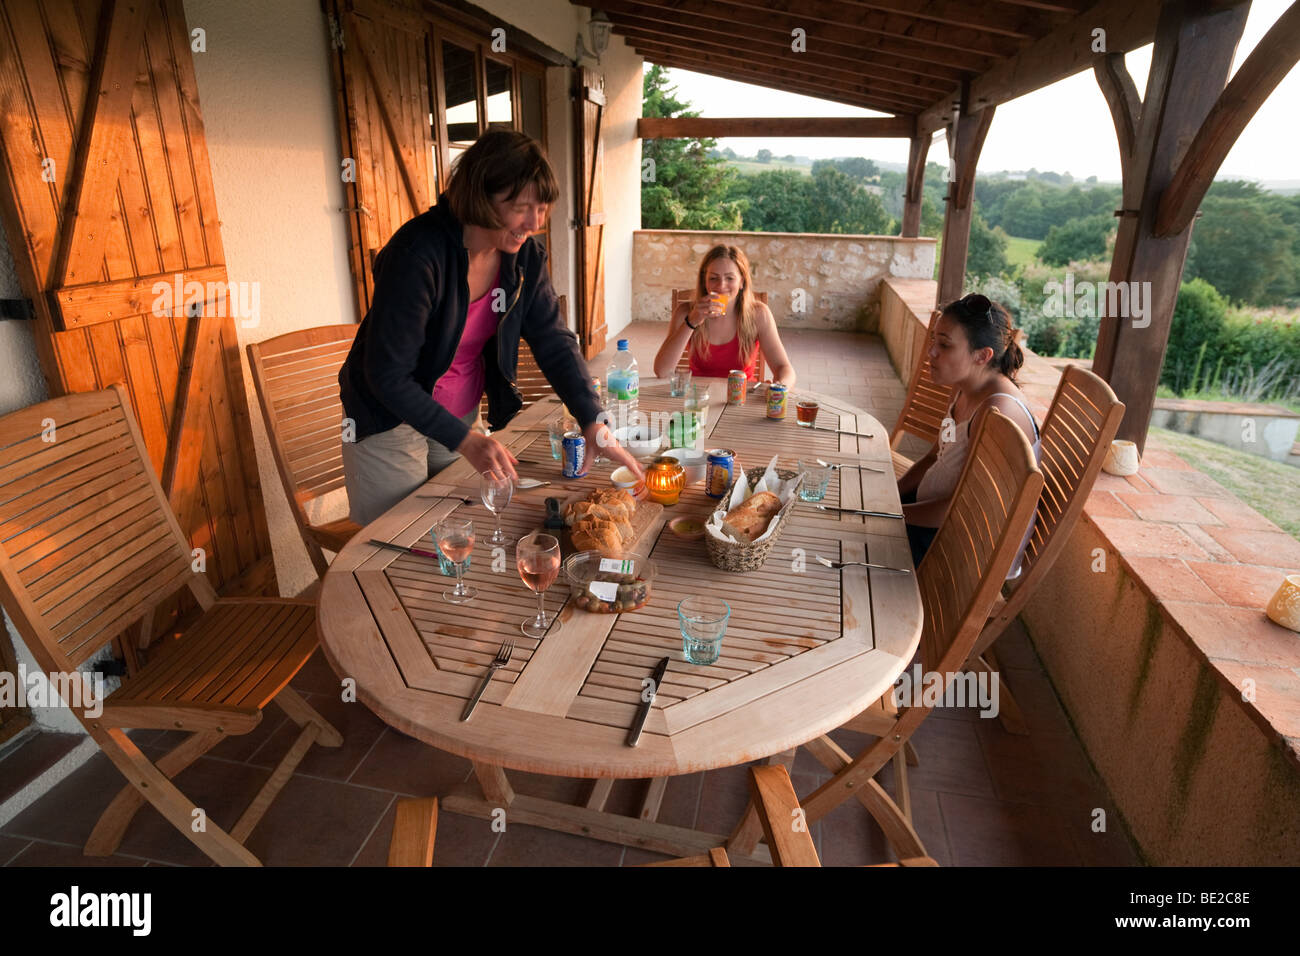 A family enjoying an evening meal on the veranda outdoors,  Aquitaine, France - Stock Image